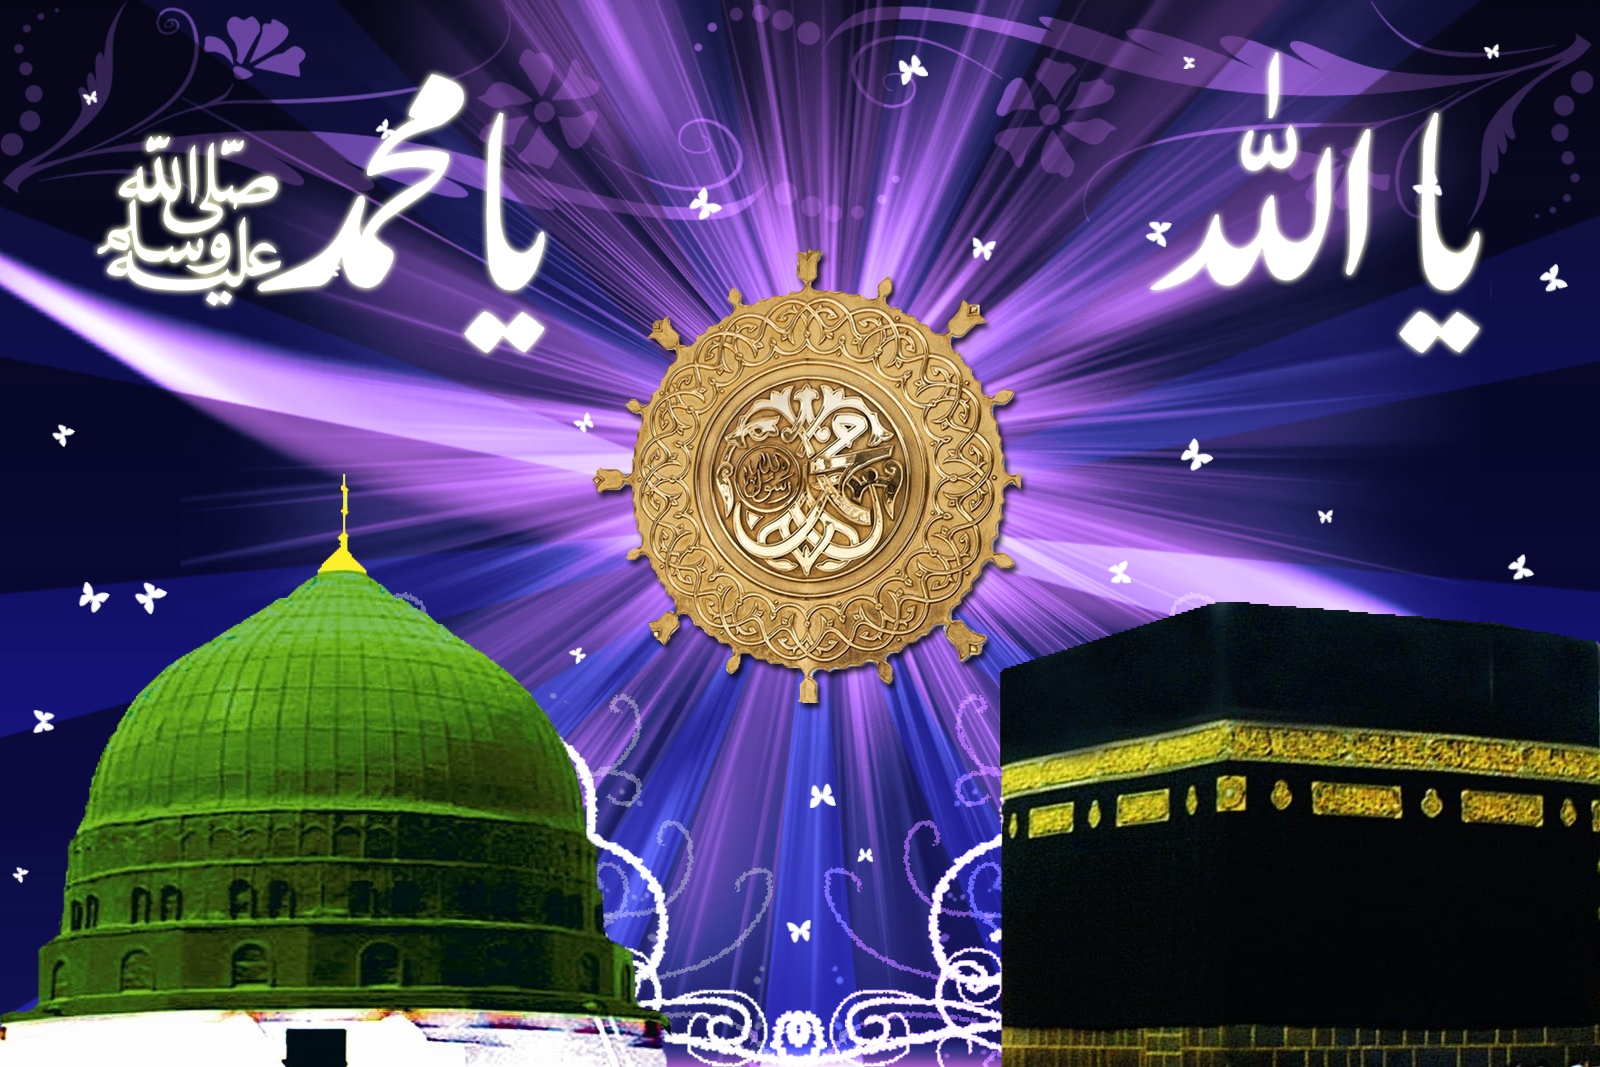 HAIDER MUNIR Islamic Wallpaper